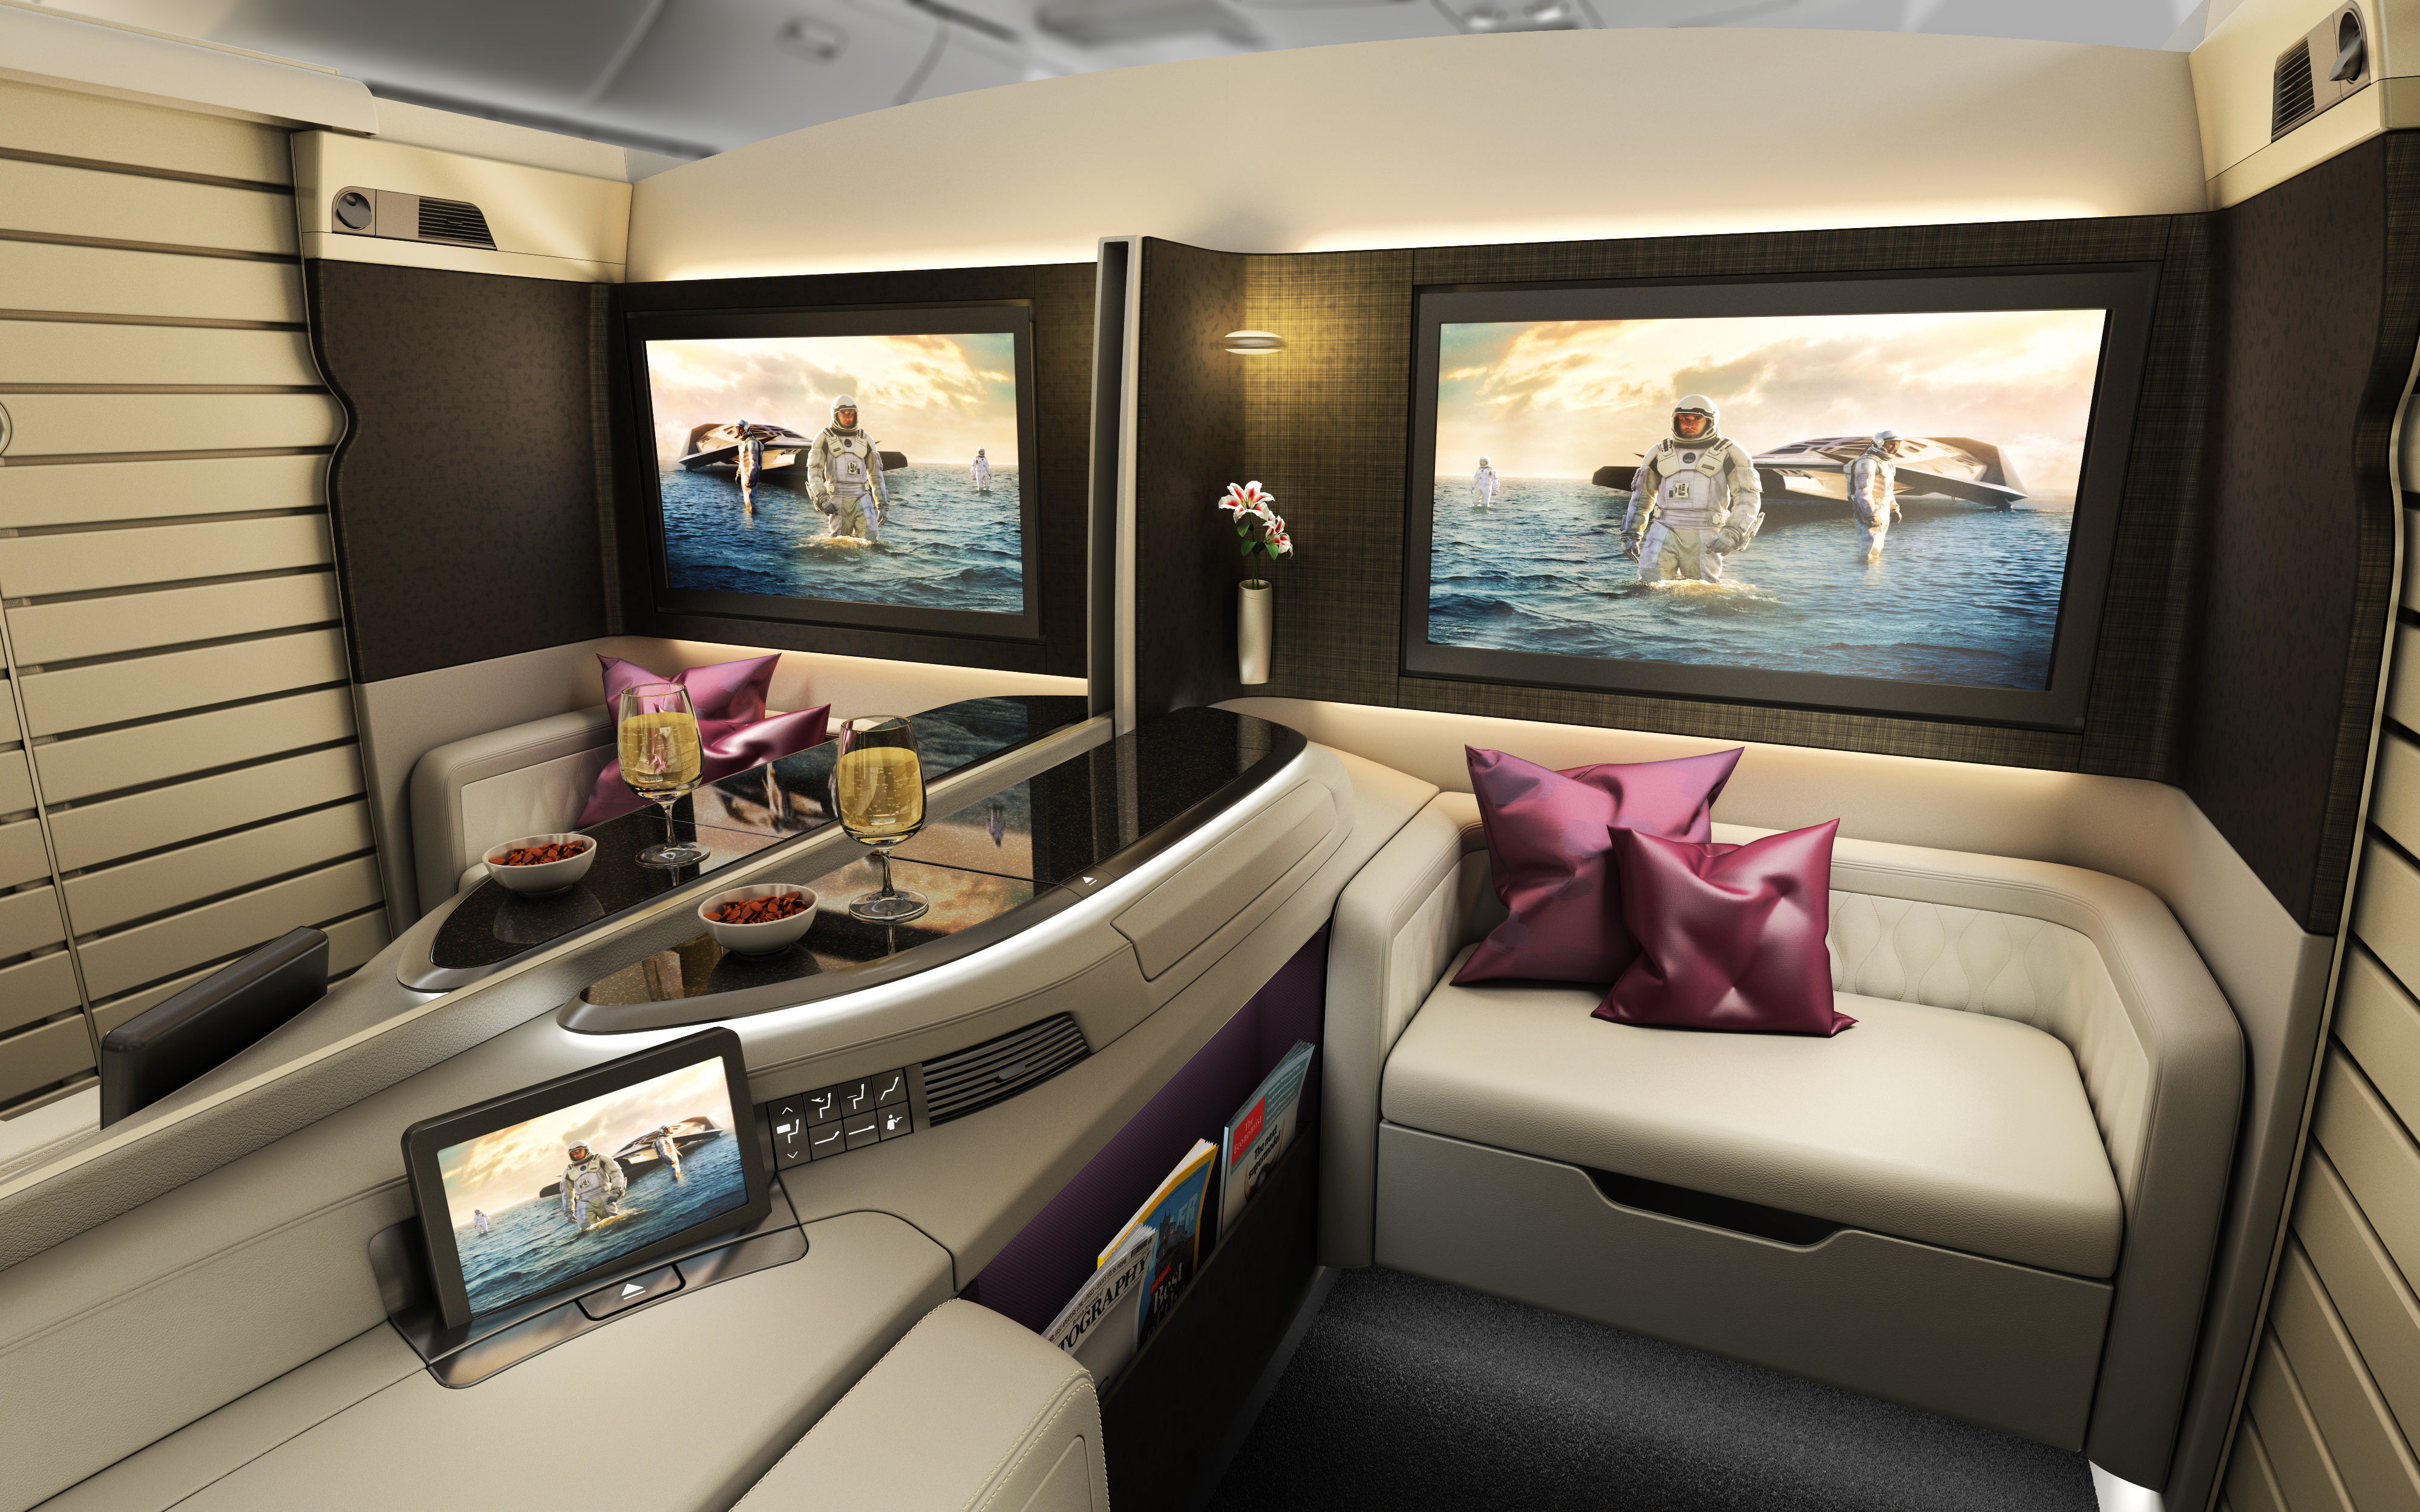 Super First Class Suite with privacy screen down